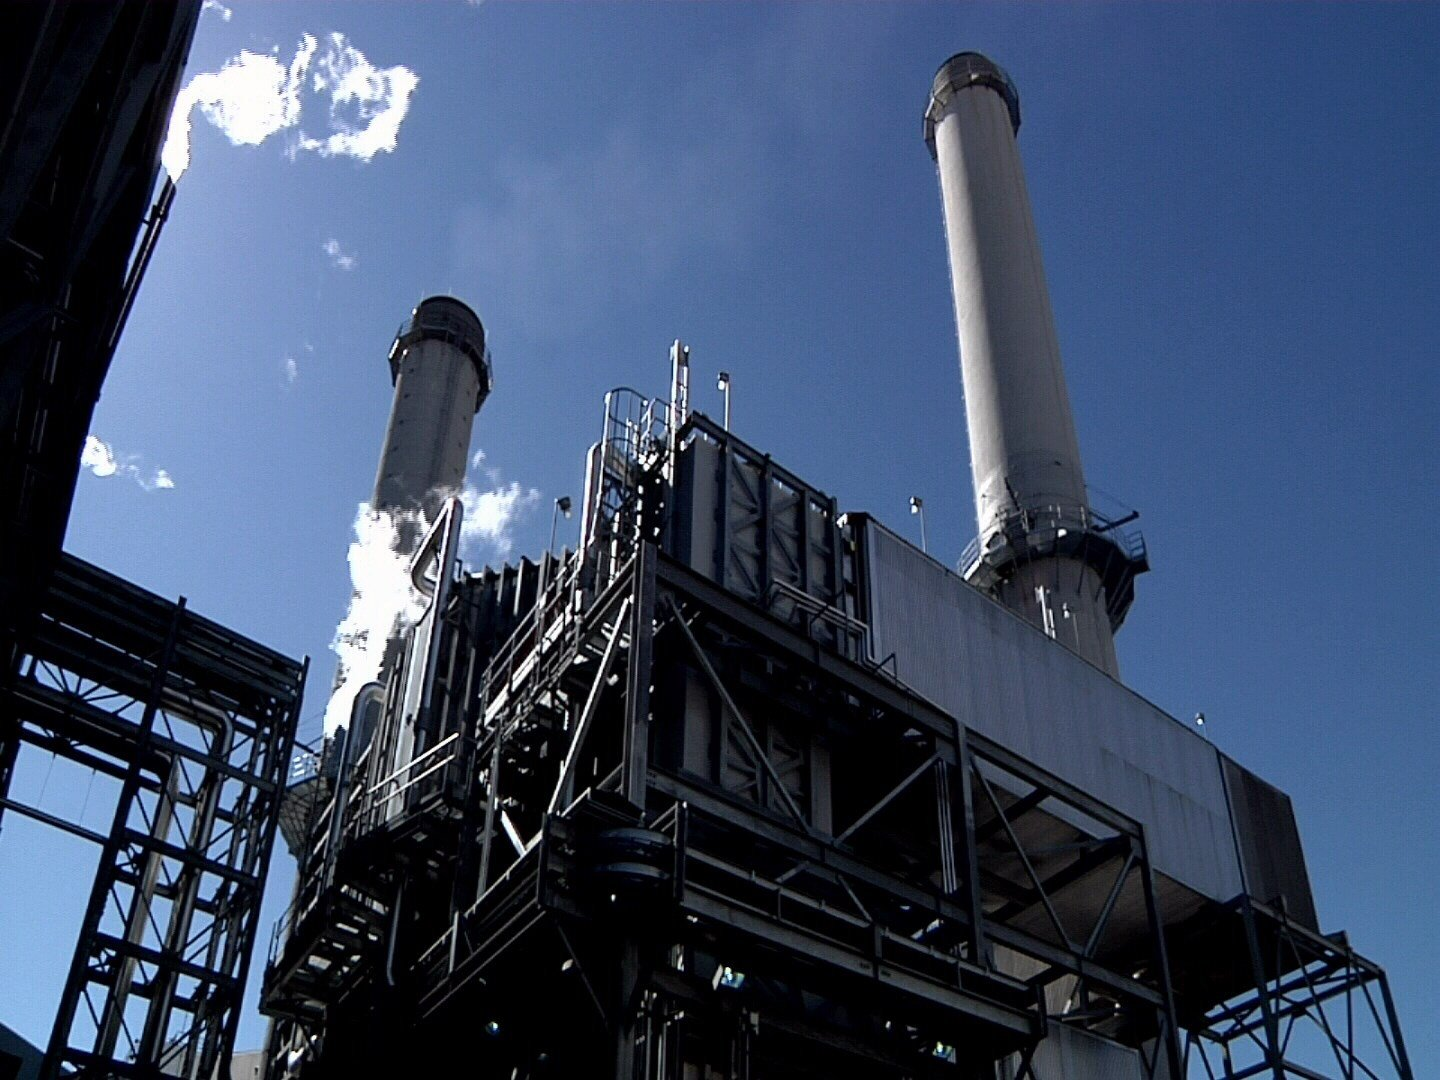 The emission stacks of units 6 and 7 of the Martin Drake power plant